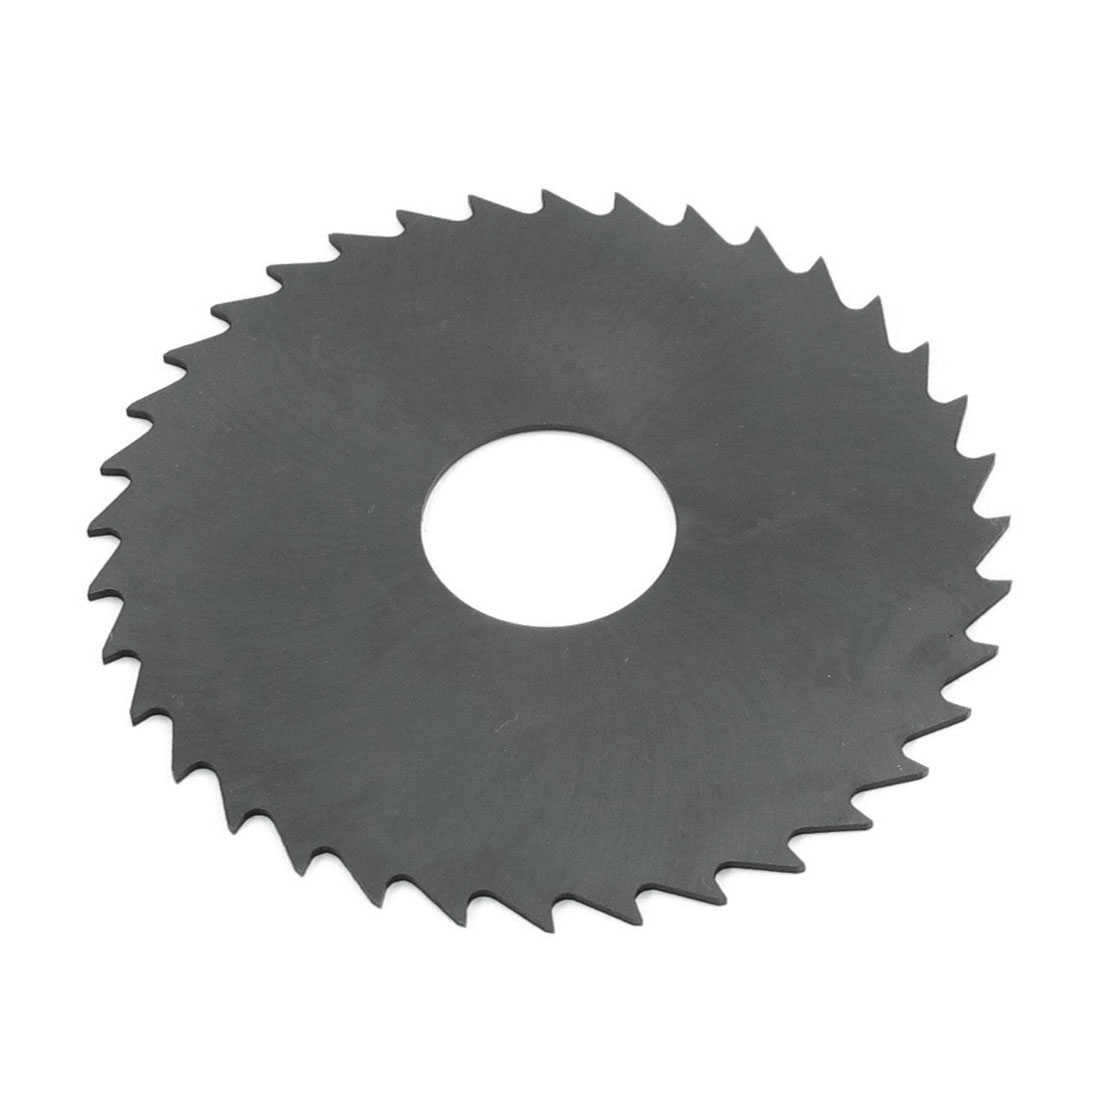 8cm x 0.1cm x 2.2cm 36 Teeth HSS Slitting Saw Blade Cutting Tool Black